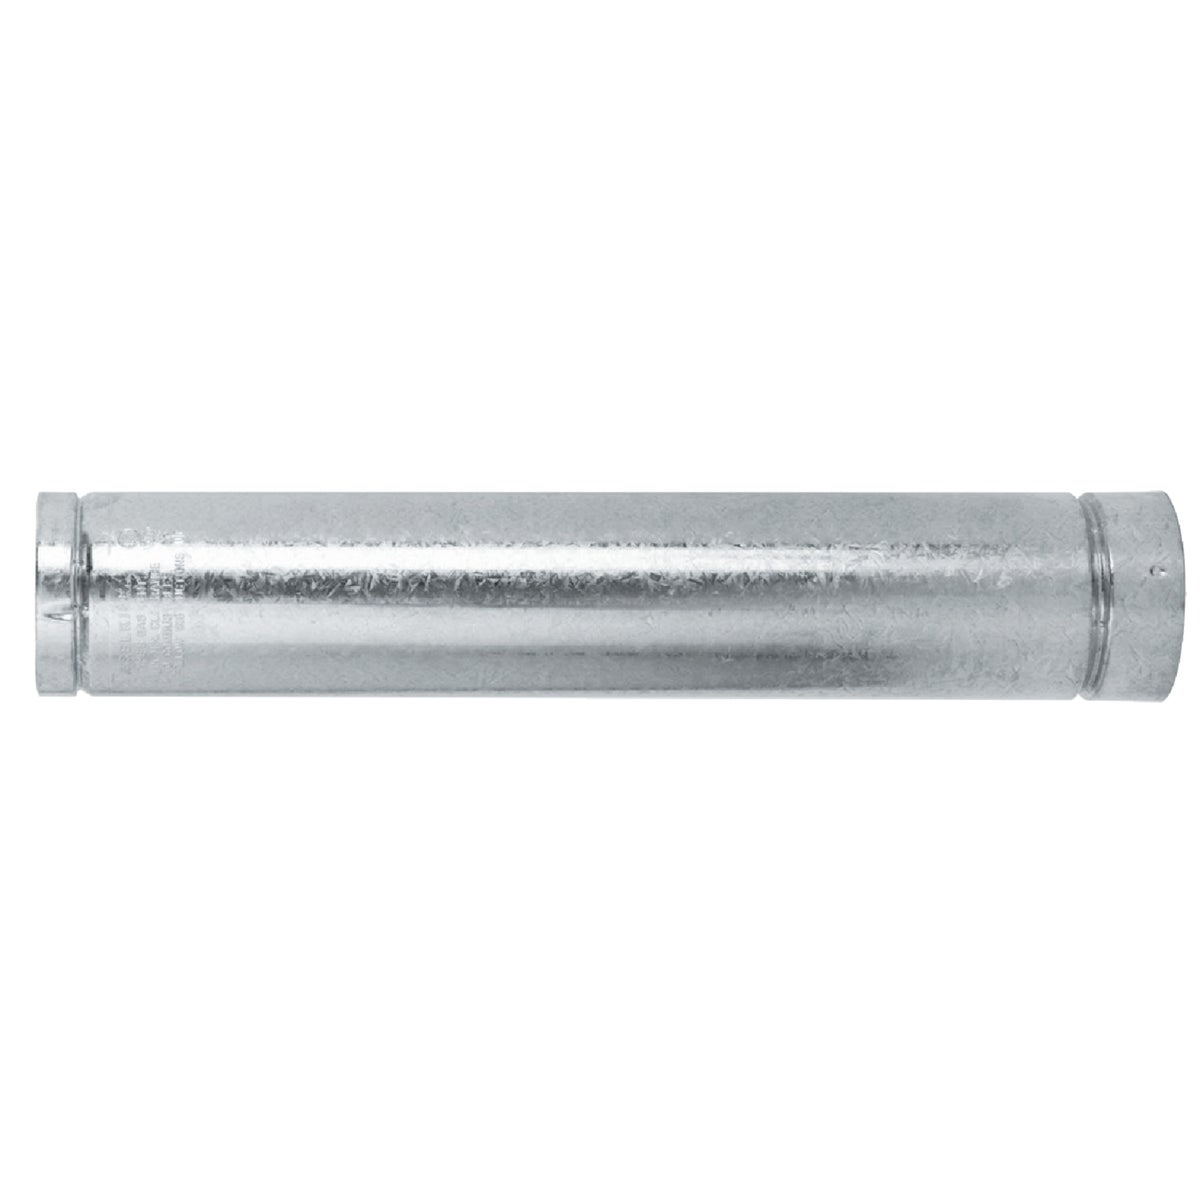 "4""X18"" RND GAS VENT PIPE - 4RV-18 by Selkirk Corporation"